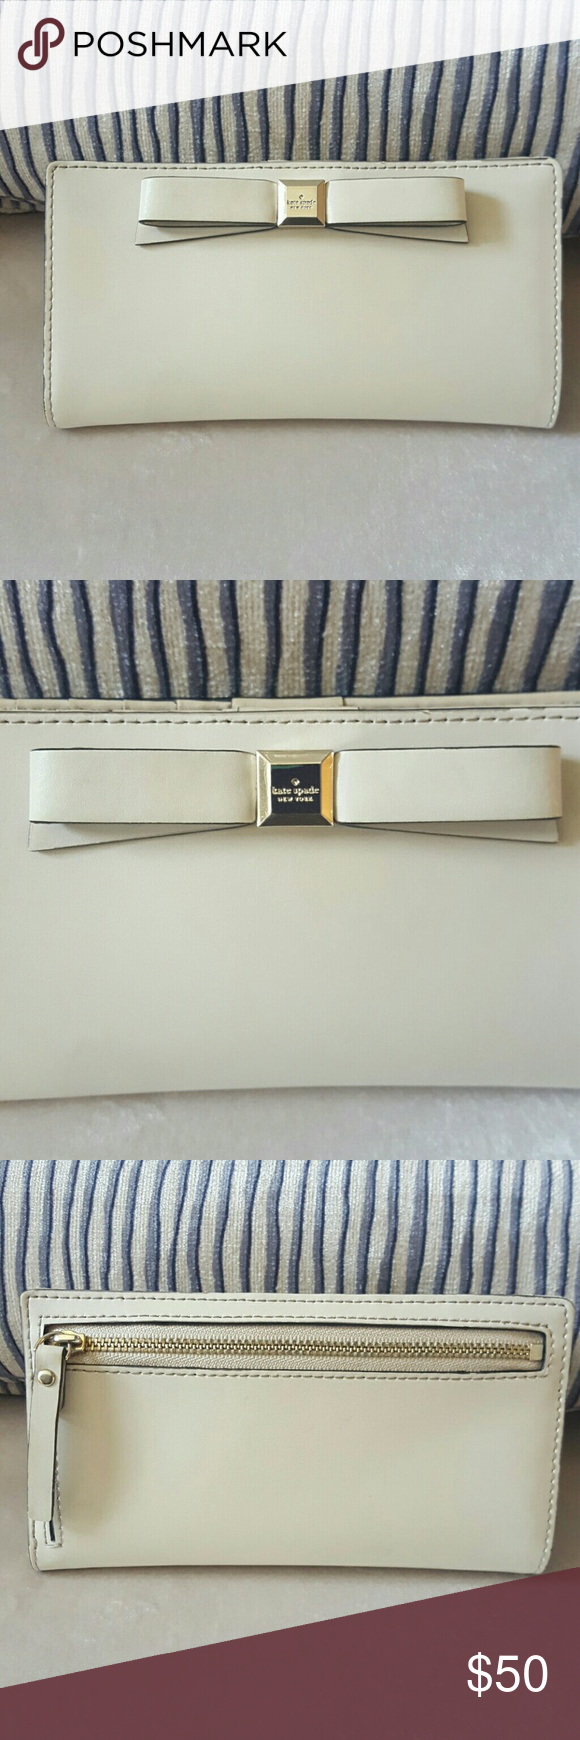 Kate Spade Bow Wallet Holds 12 credit cards plus a window for ID. 4 pockets/slots for money, receipts etc and back zip compartment for coins. Lightly used. kate spade Bags Wallets